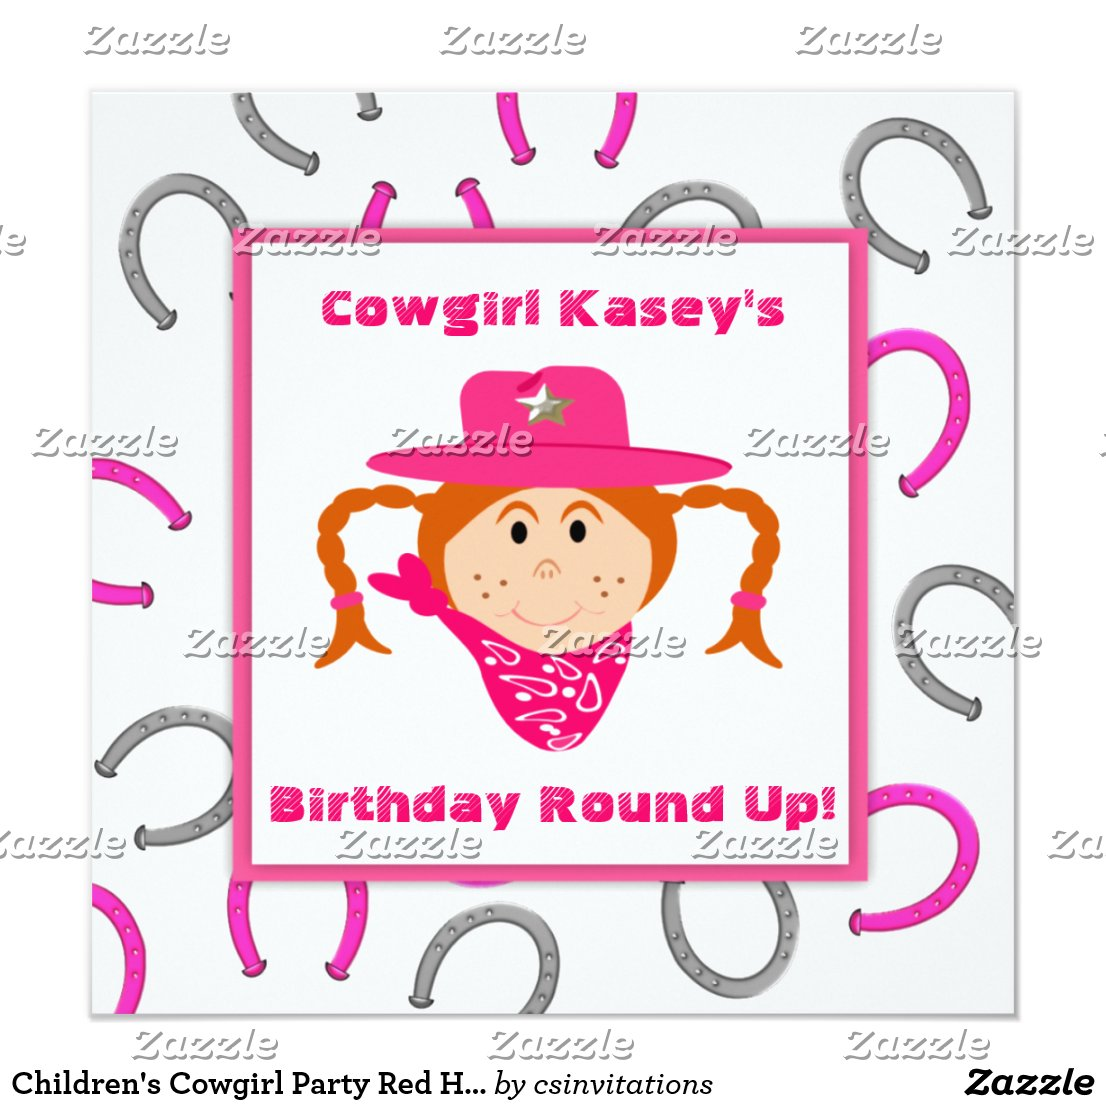 Children's Cowgirl Party Red Haired Girl Birthday